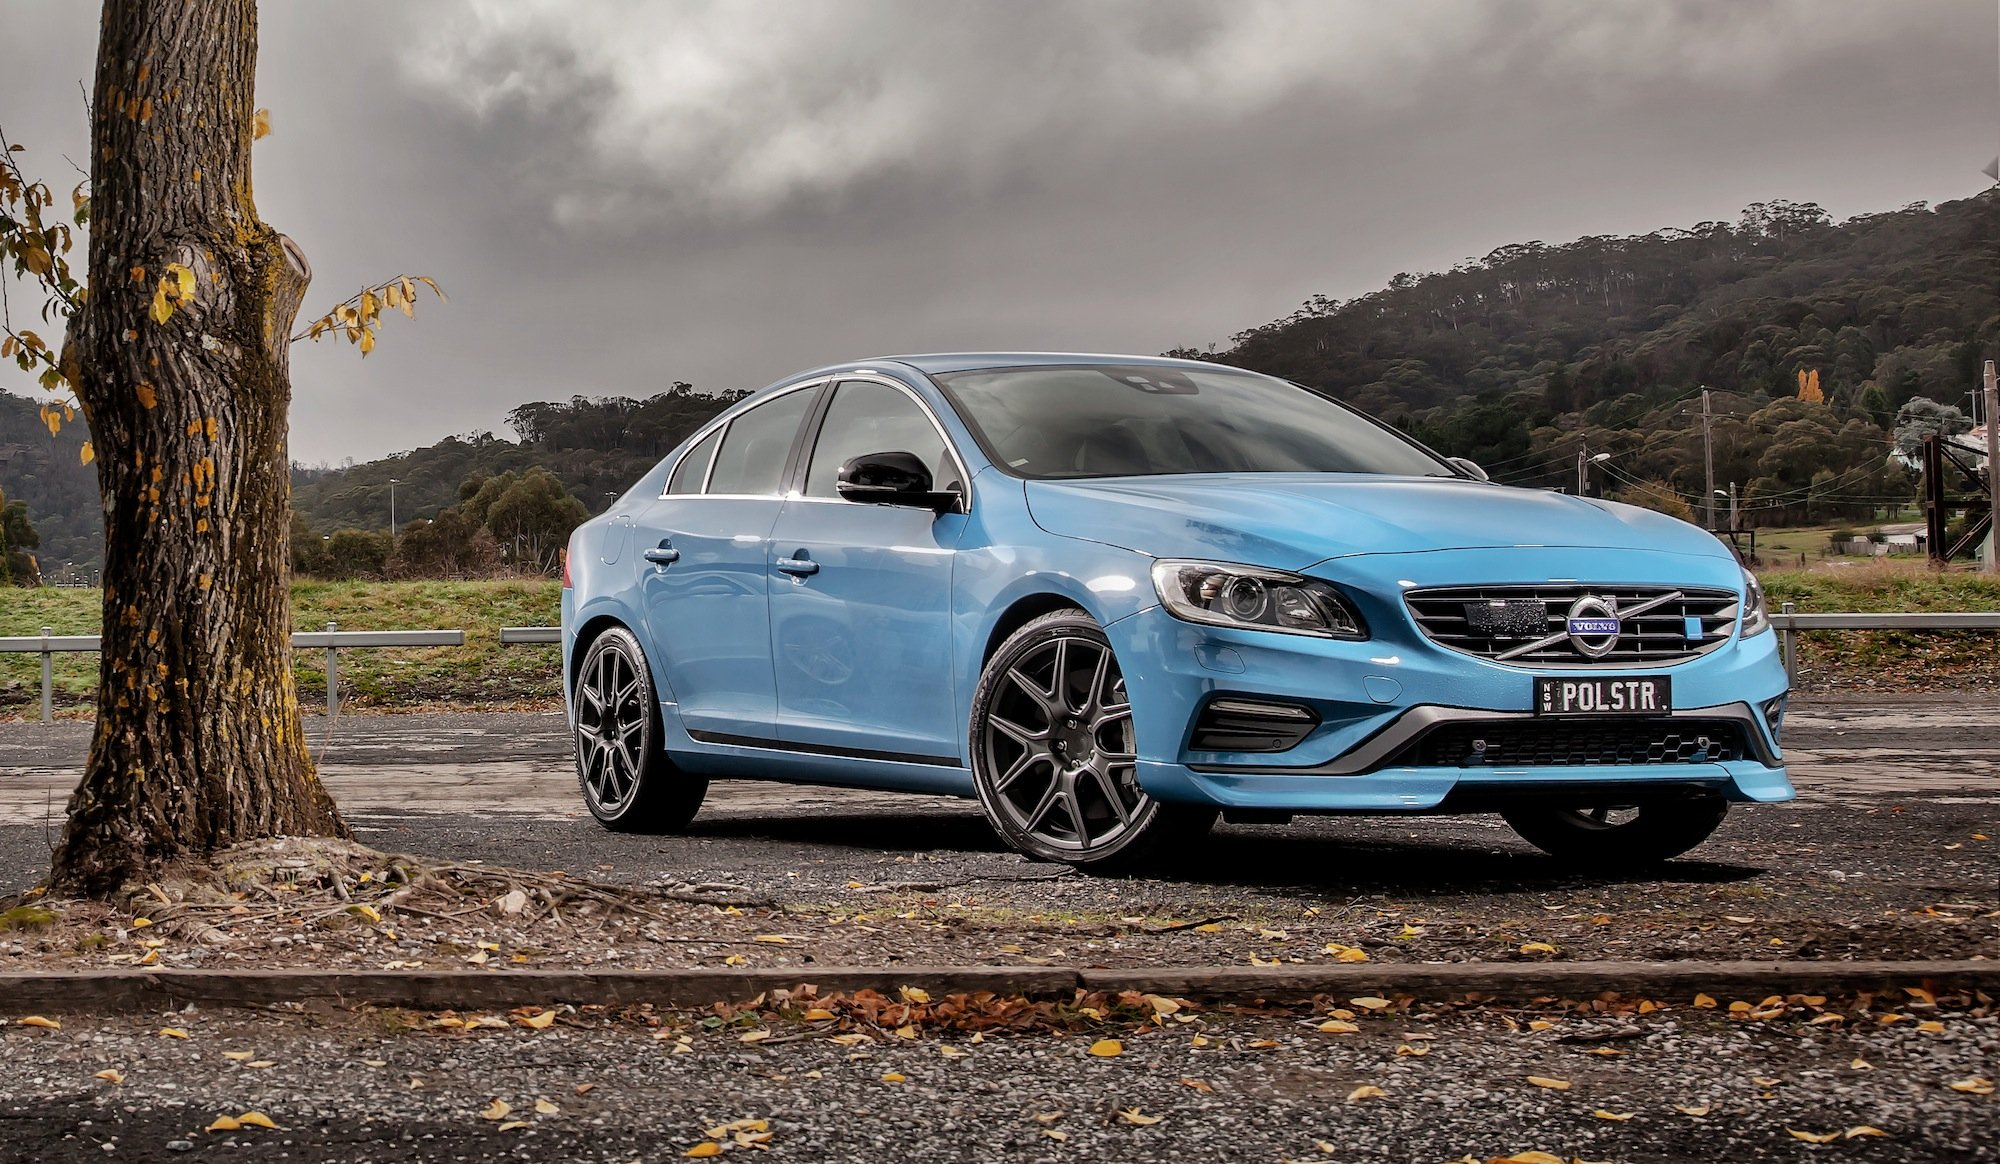 Price Of Mazda 5 >> 2014 Volvo S60 Polestar Review - photos | CarAdvice